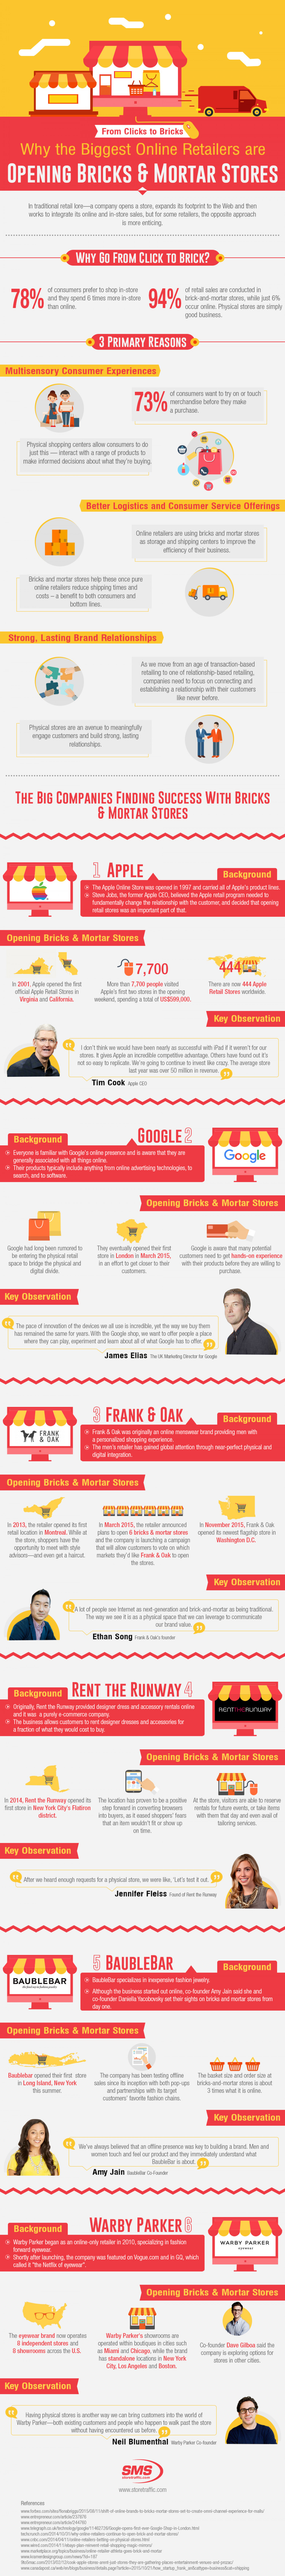 Why the Biggest Online Retailers are Opening Bricks & Mortar Stores  Infographic